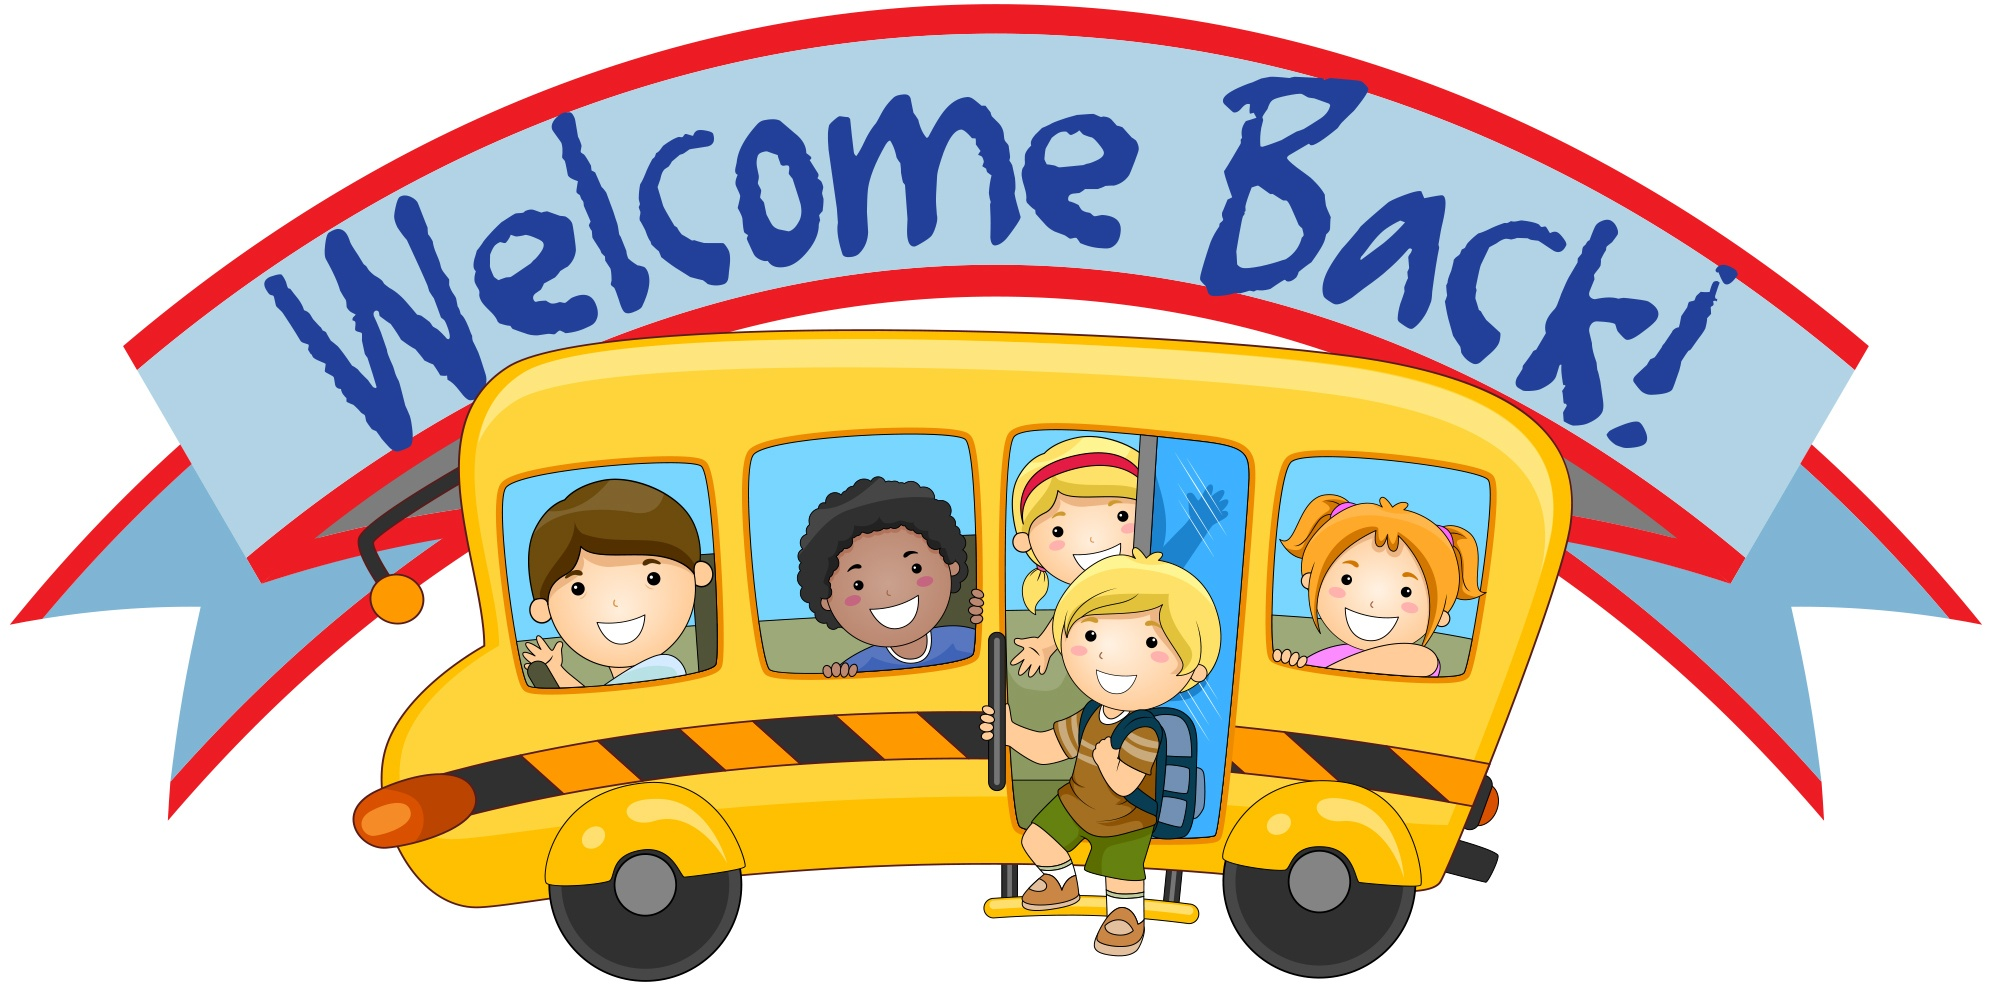 Welcome Back From Winter Break  We Hope You Had An Enjoyable Time With